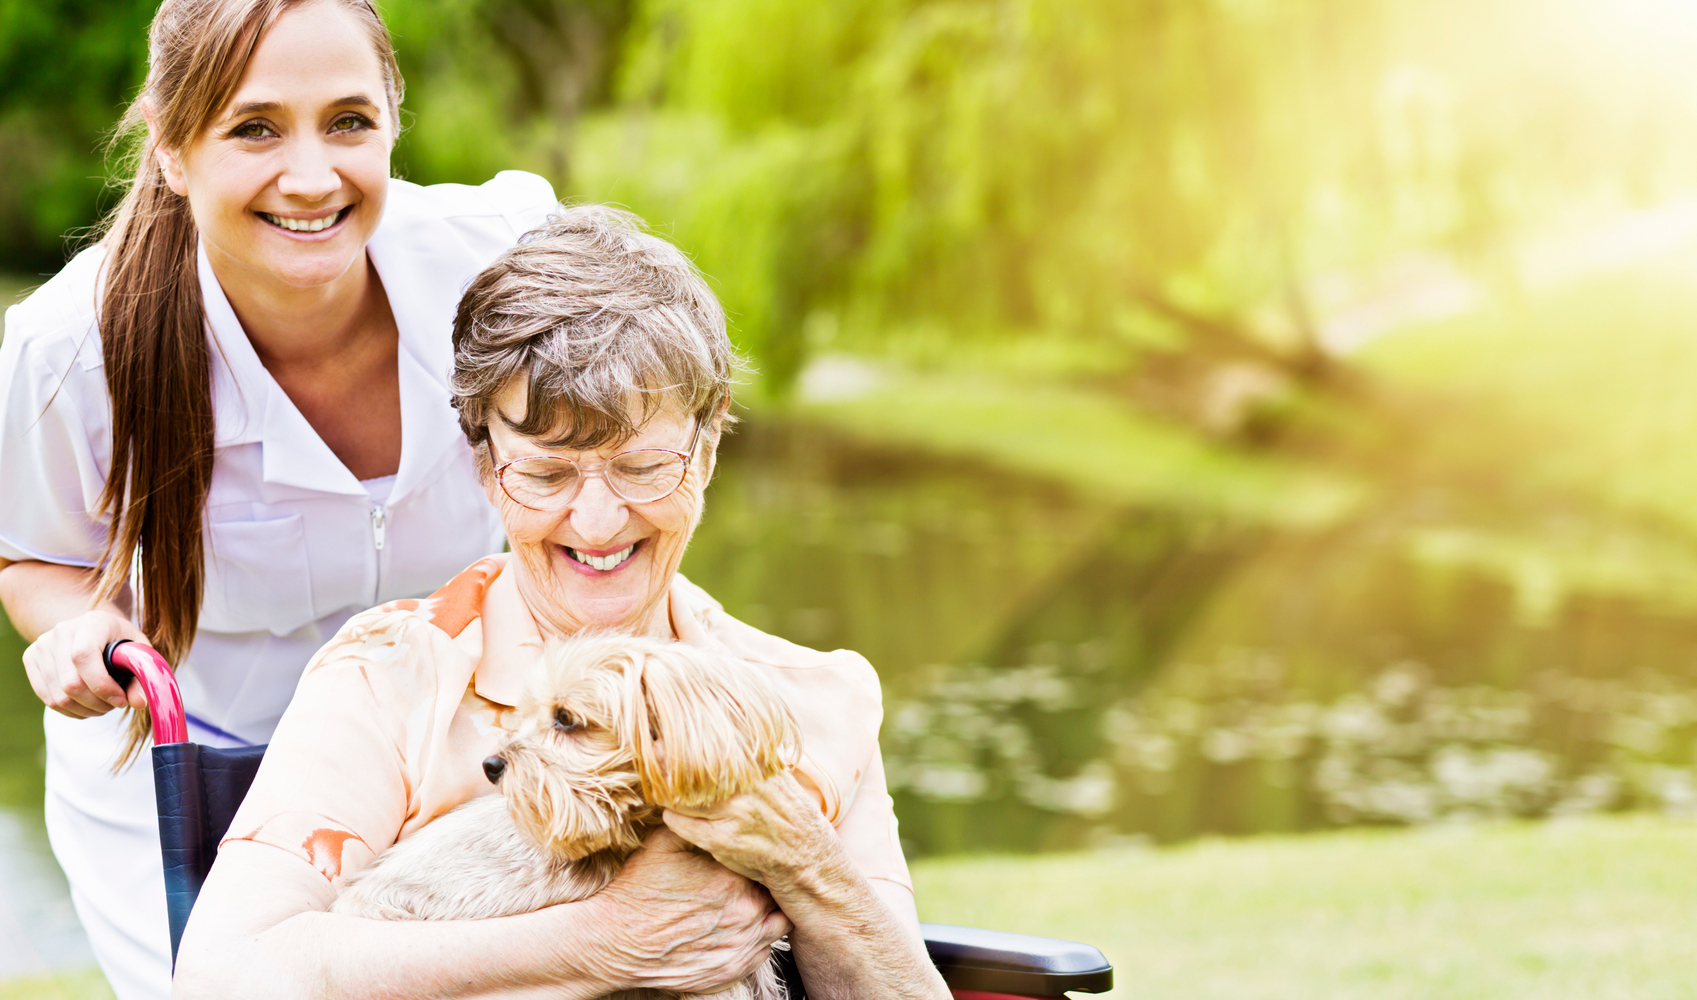 Find HomeCare Providers with ease